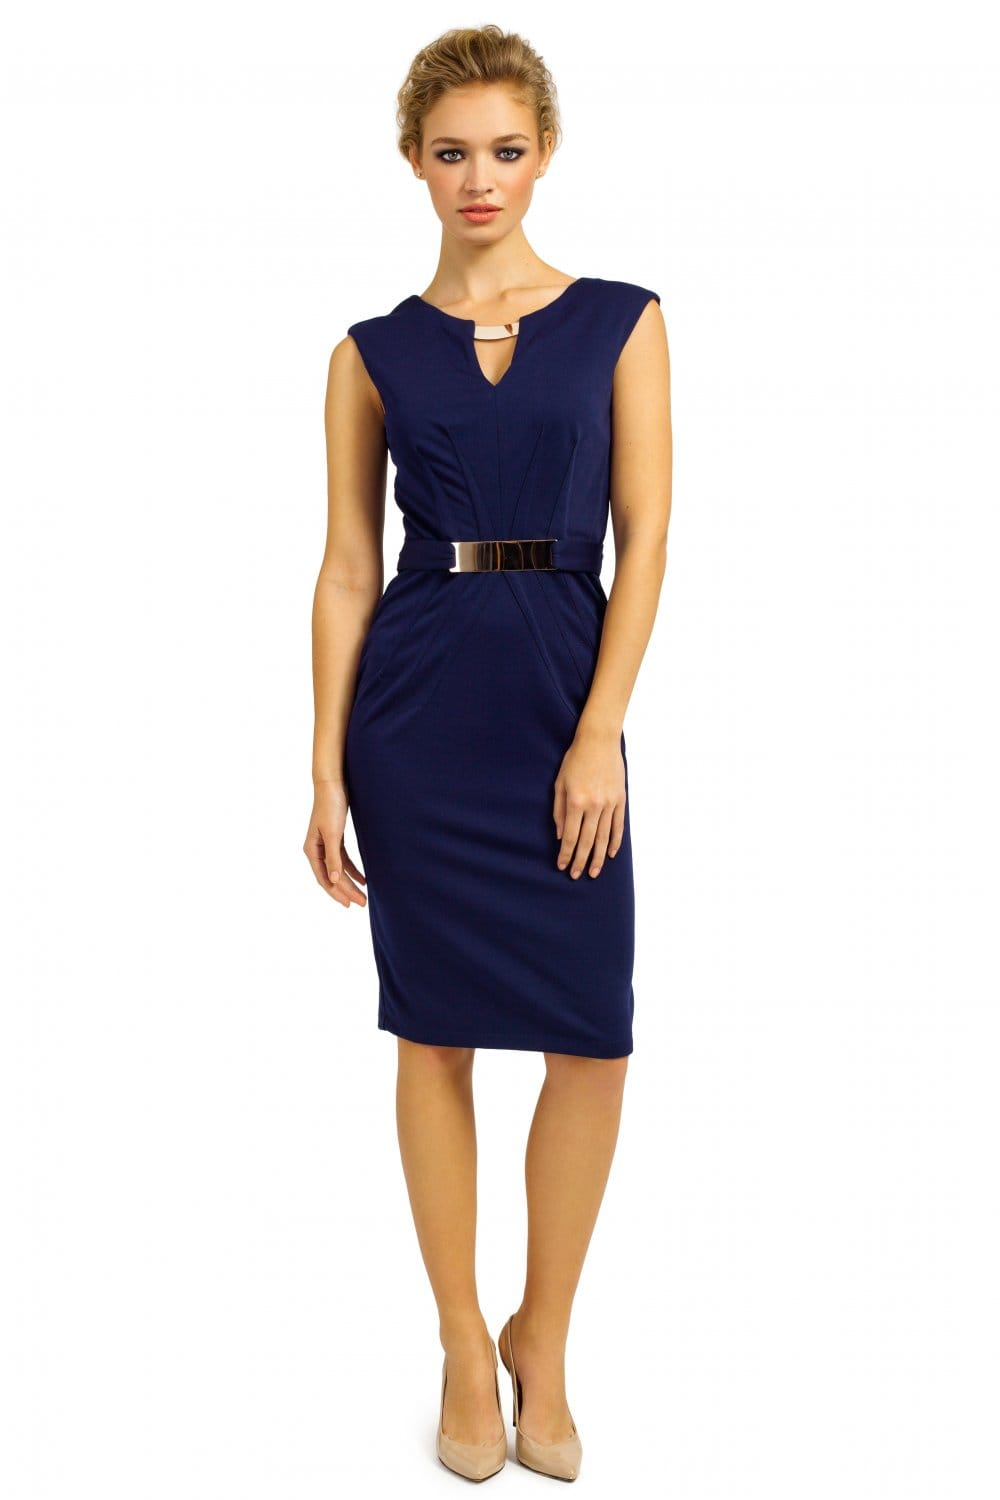 Navy Gold Chocker  Gold Belted Pencil Dress